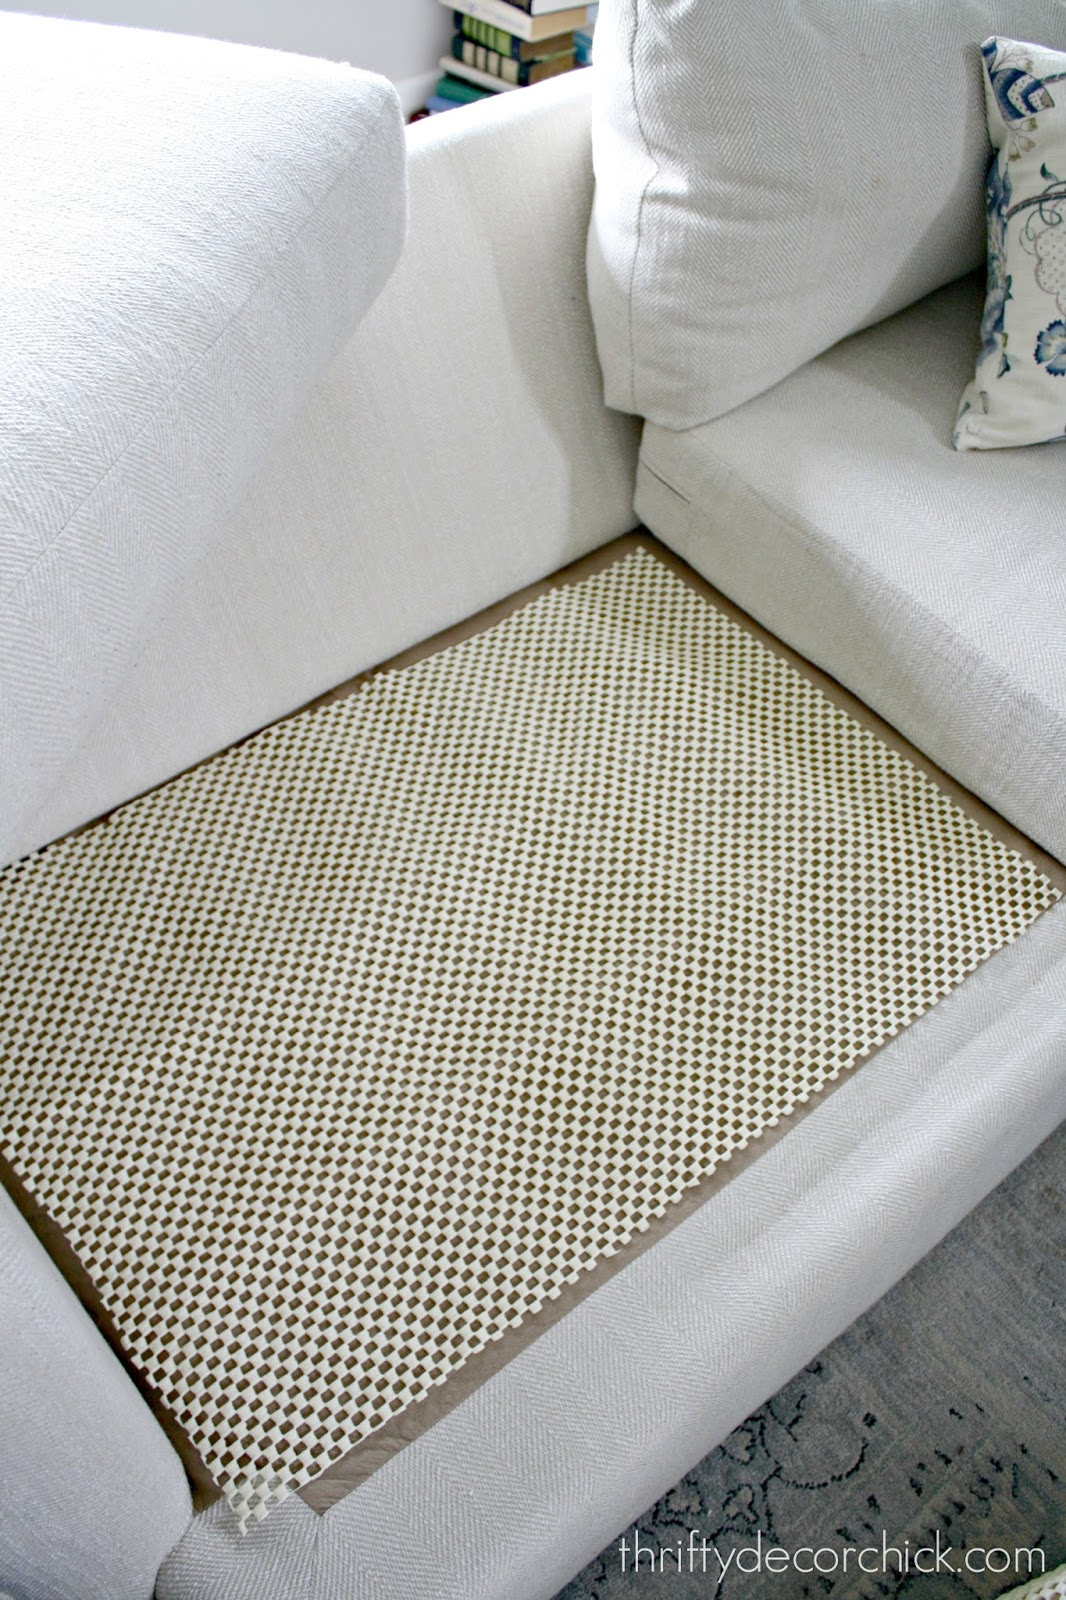 How To Keep Couch Cushions From Sliding, How To Repair Sofa Pillows On Sectional